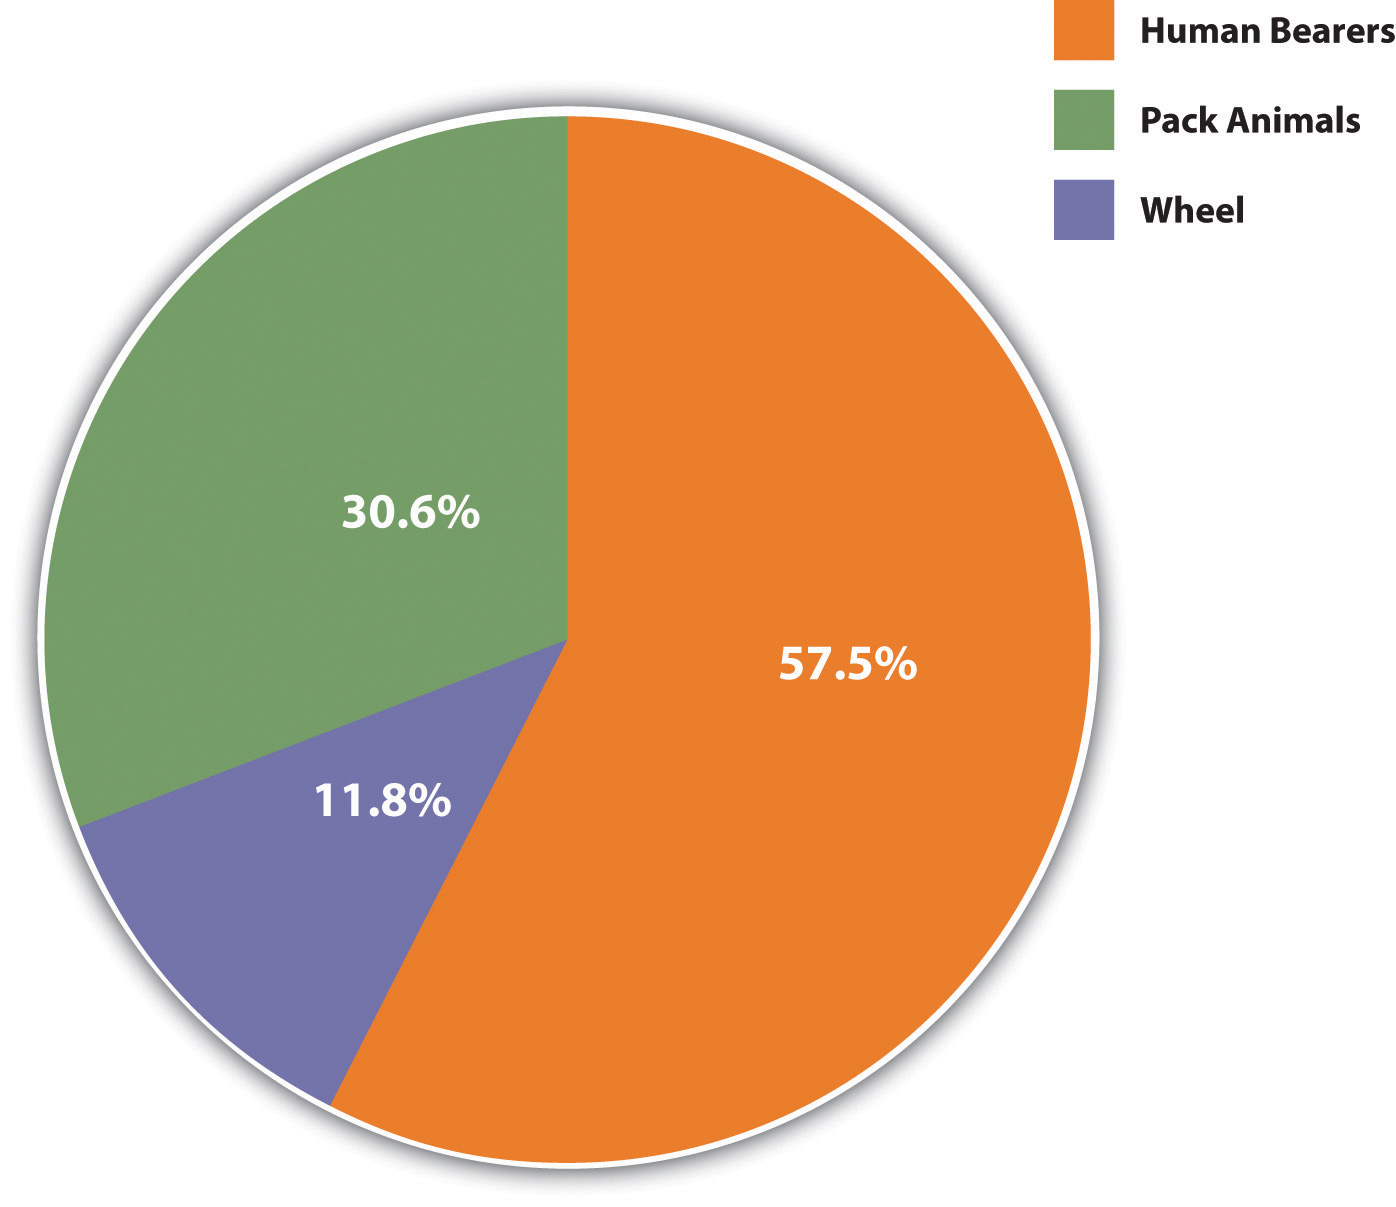 Primary means of moving heavy loads: 57.5% human bearers, 30.6% pack animals, 11.8% wheel